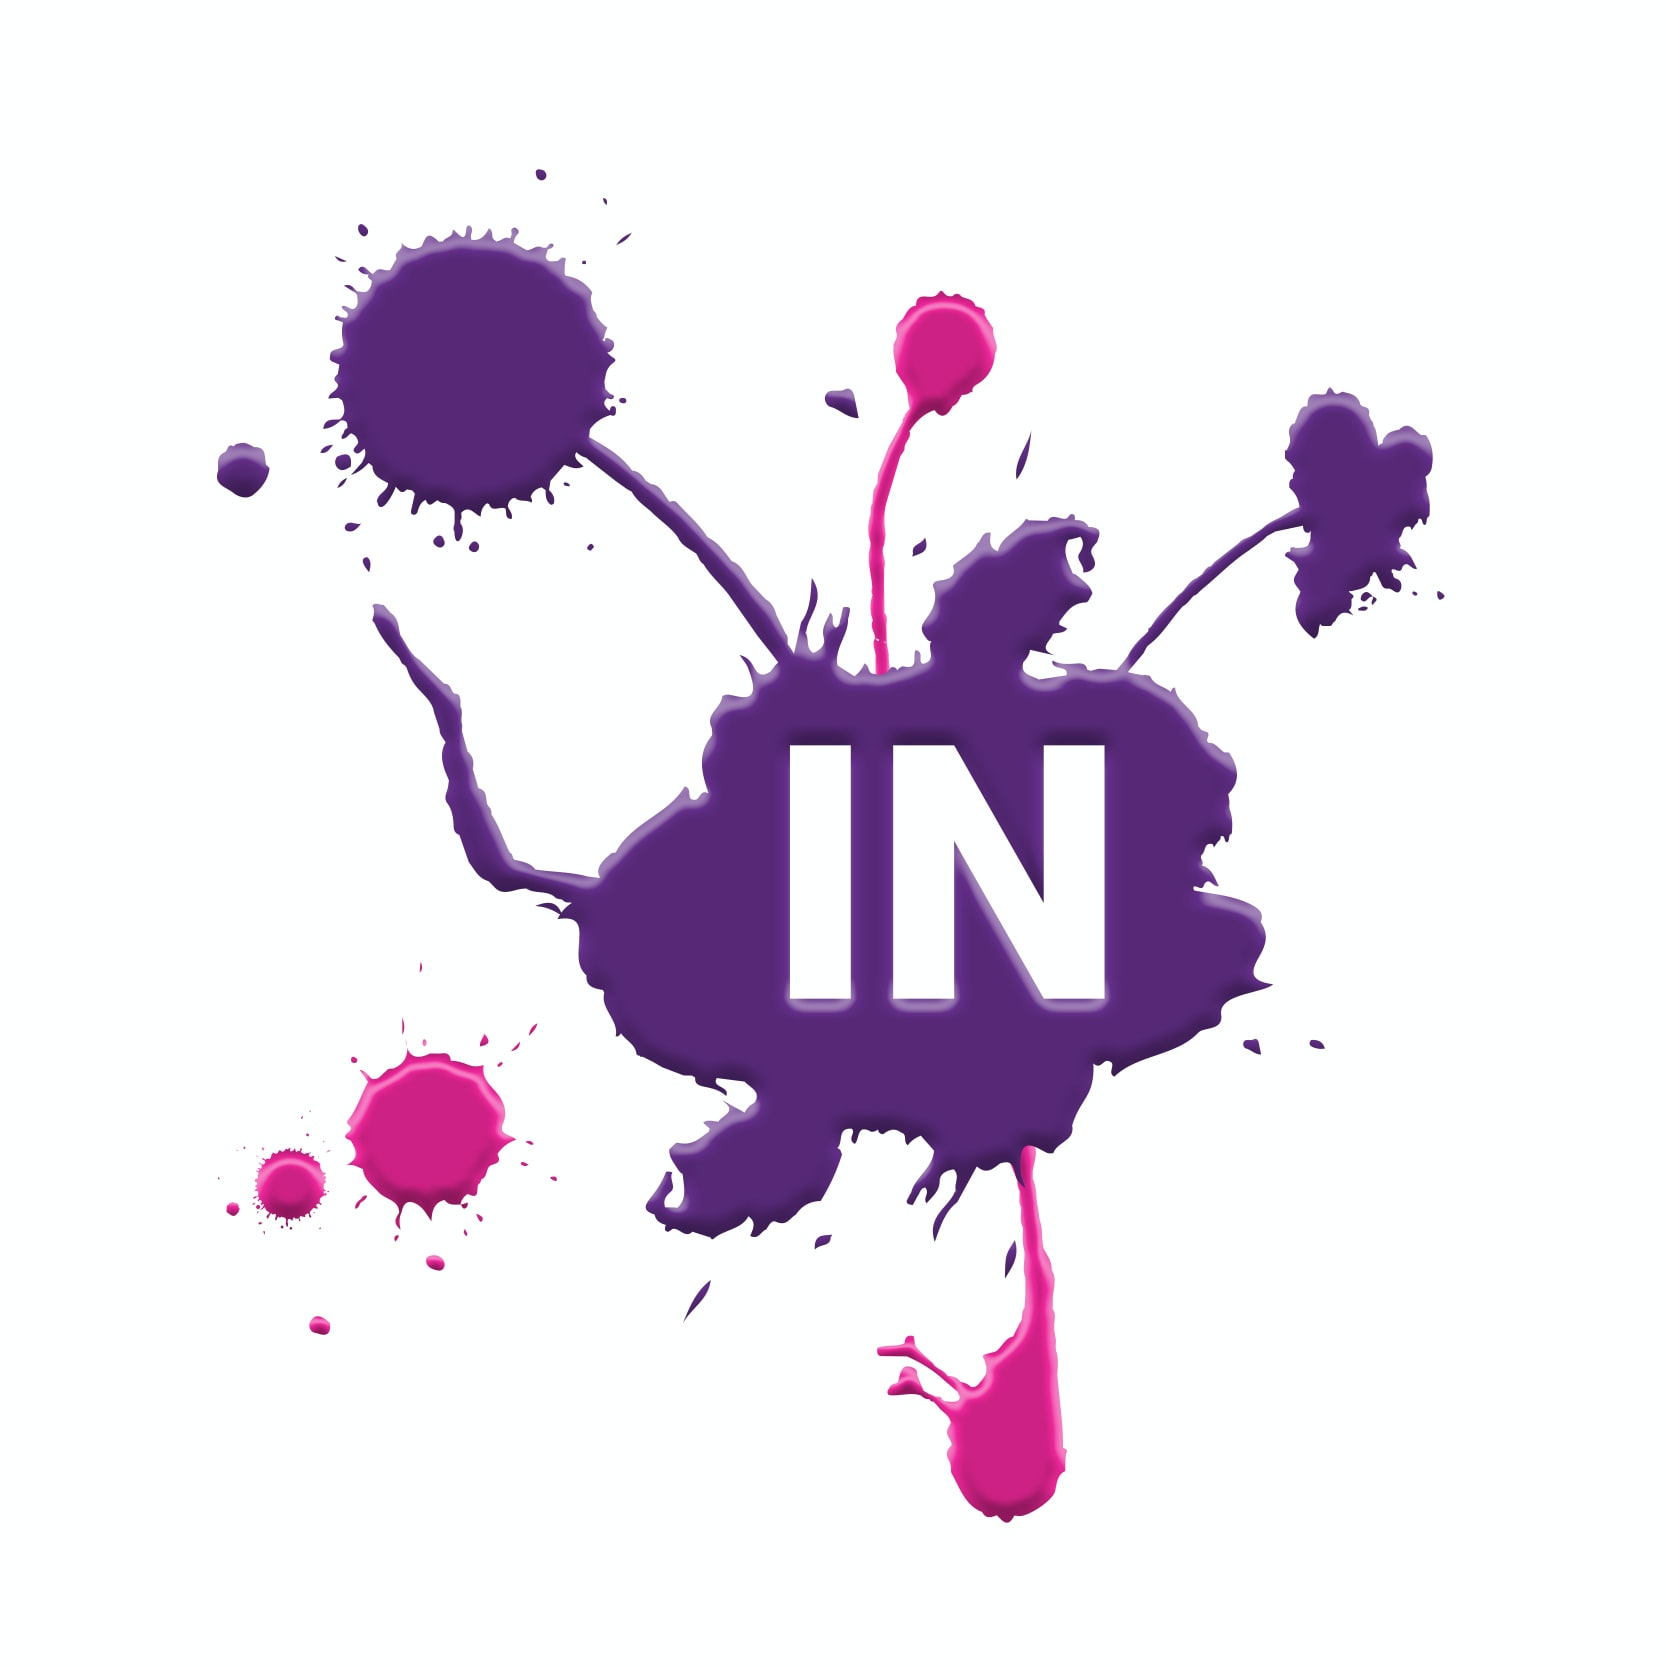 Go to influence network's profile